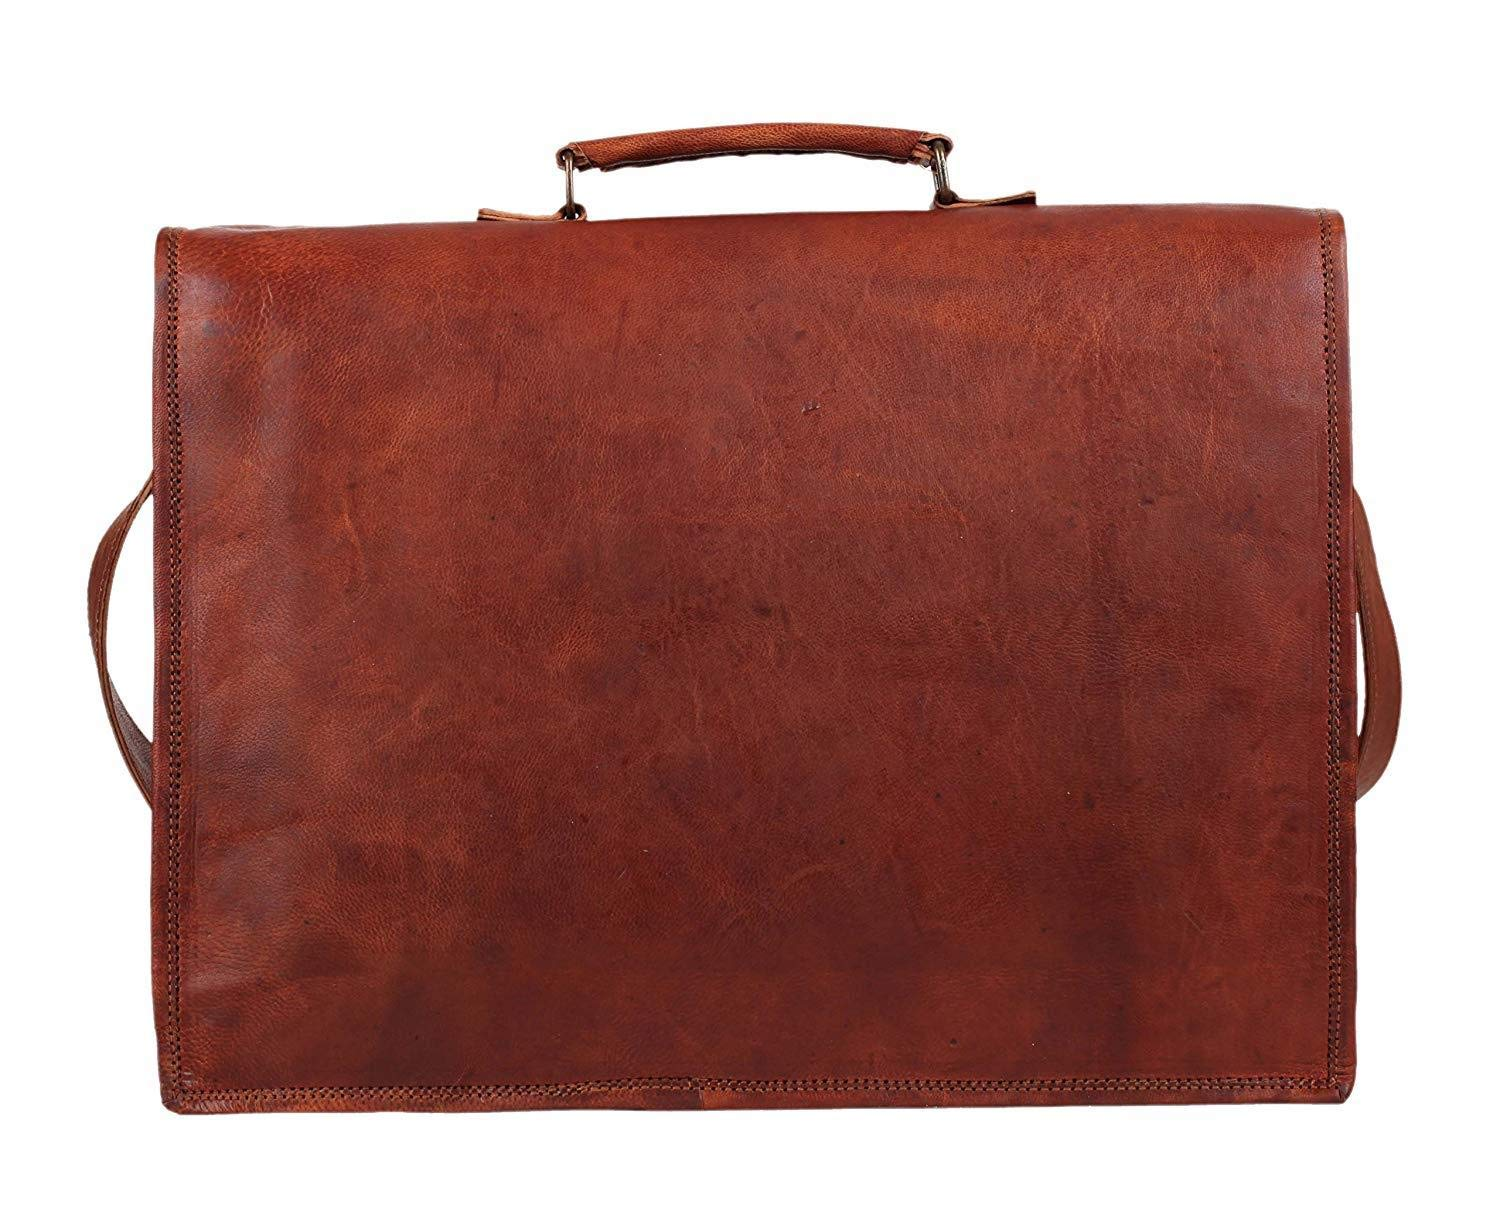 17 Inch Vintage Men's Brown Handmade Leather Briefcase Best Laptop Messenger Bag Satchel